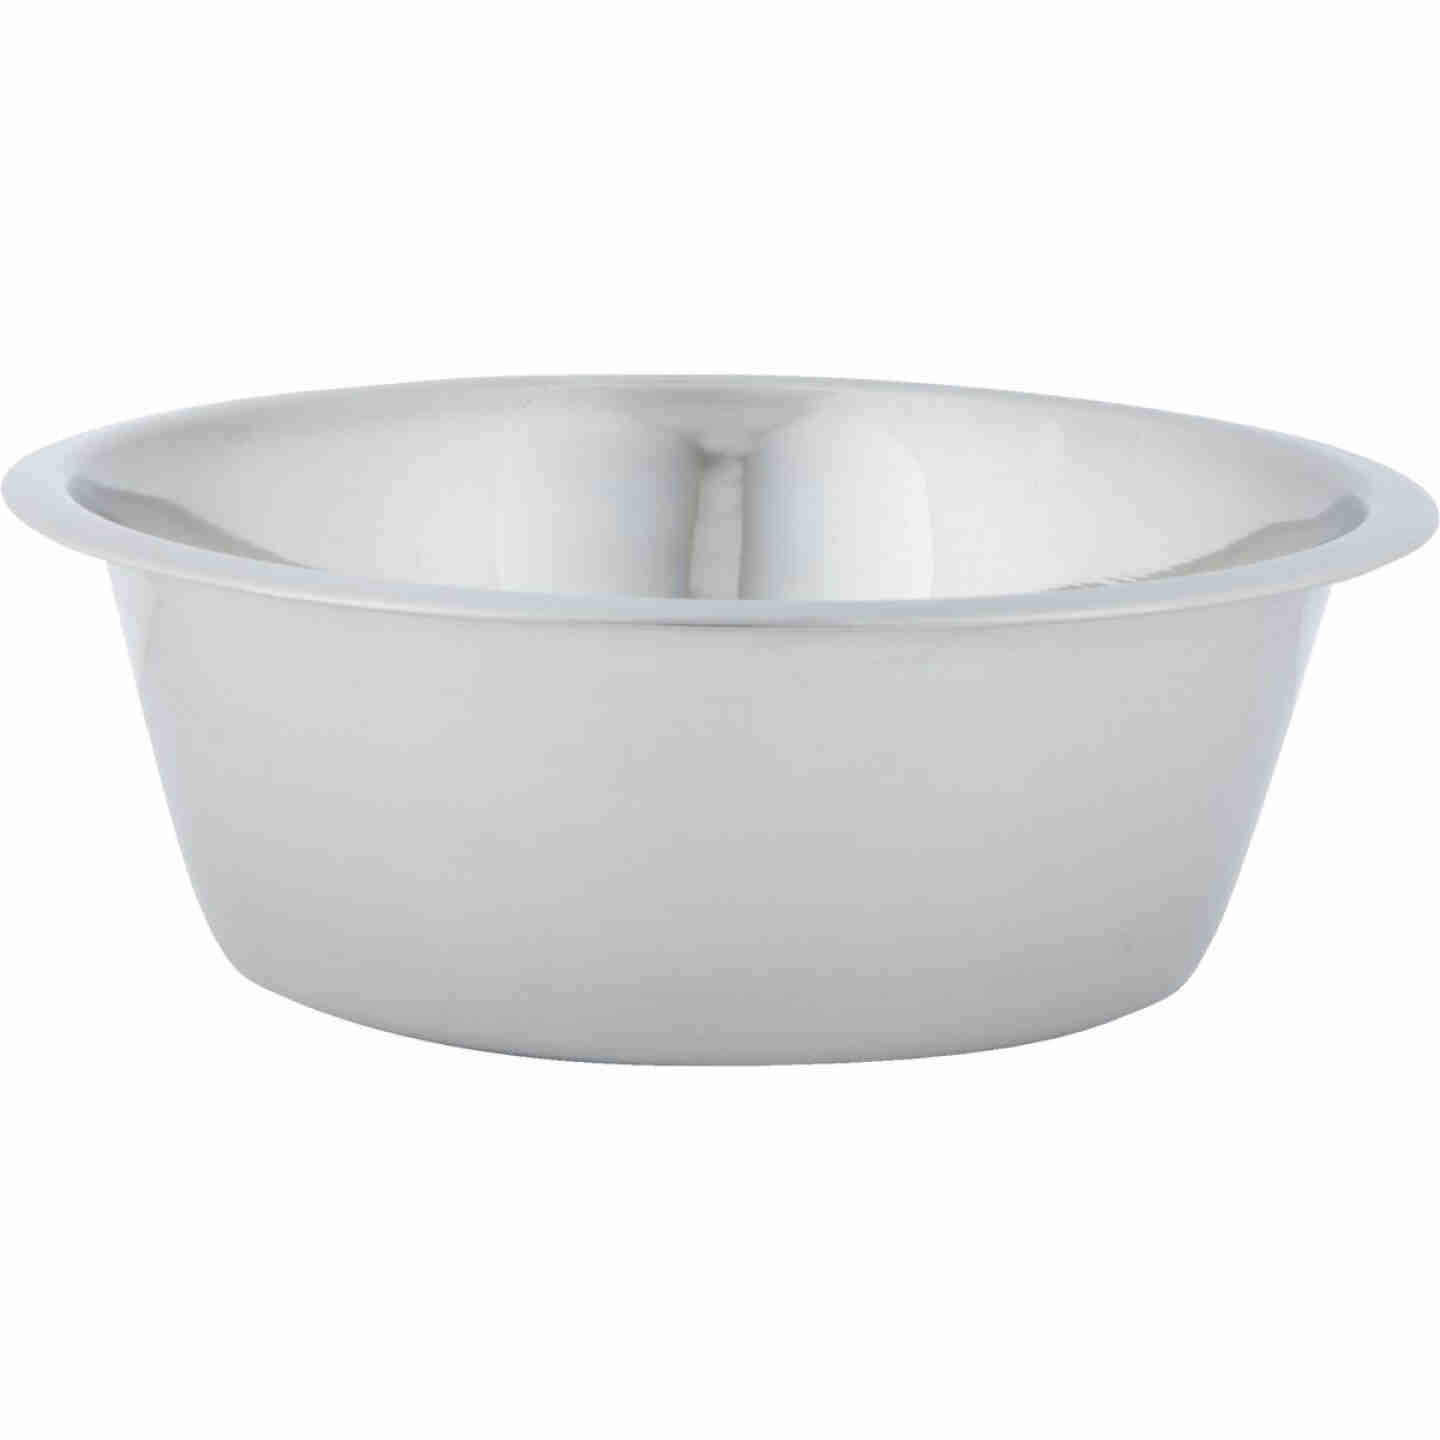 Westminster Pet Ruffin' it Stainless Steel Round 2 Qt. Pet Food Bowl Image 3